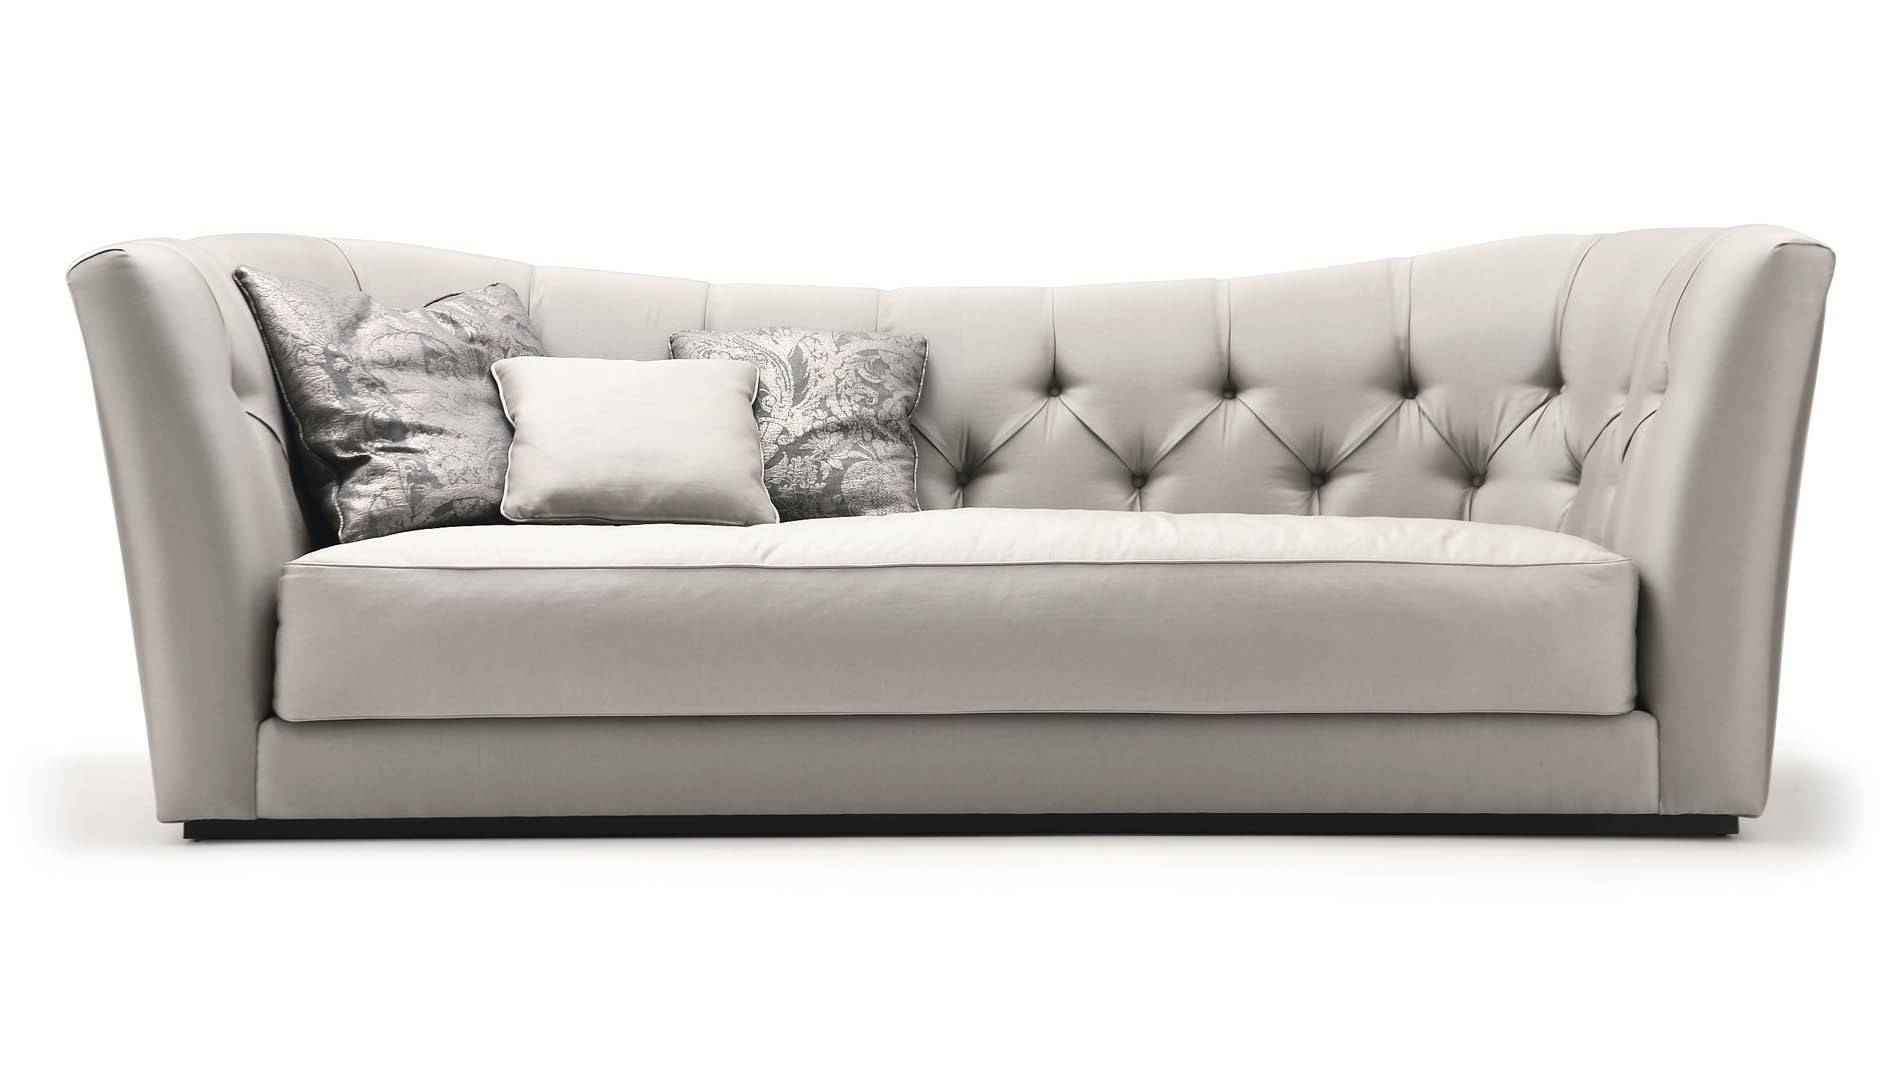 Contemporary, Butterfly 3 Seater Sofa , Buy Online At Luxdeco Regarding Modern 3 Seater Sofas (View 1 of 30)